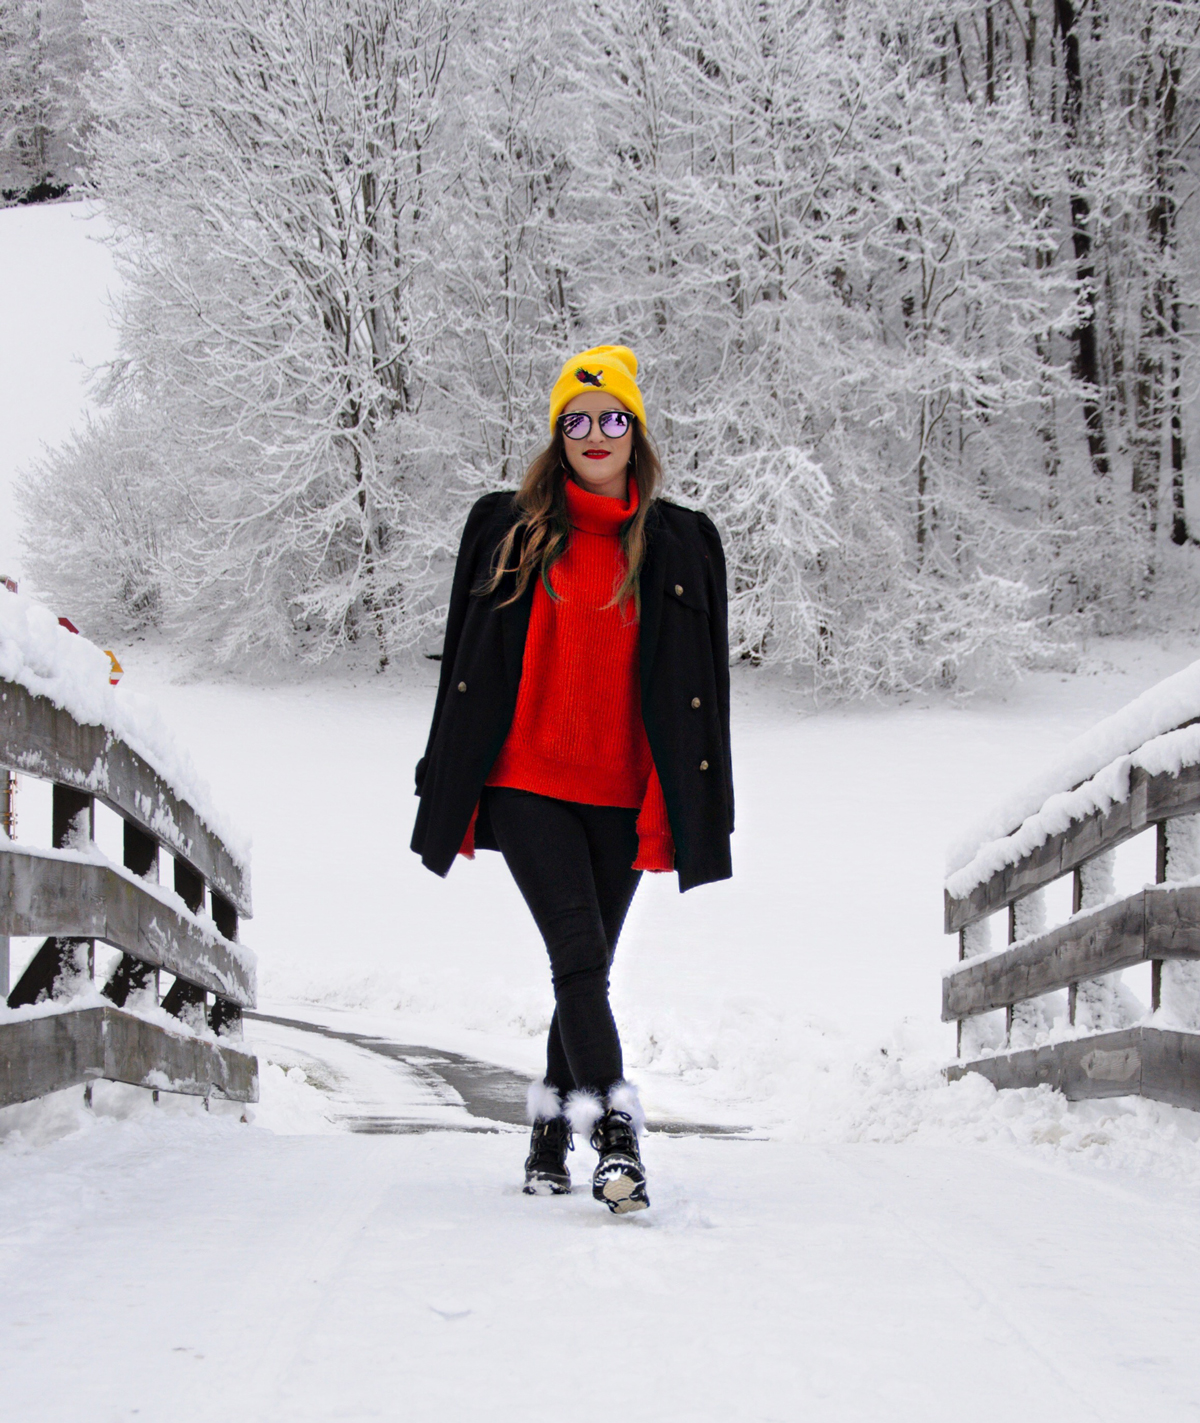 Andrea Steiner with her fashion blog from Lucern (Switzerland) wear Sorel boots for Winter.